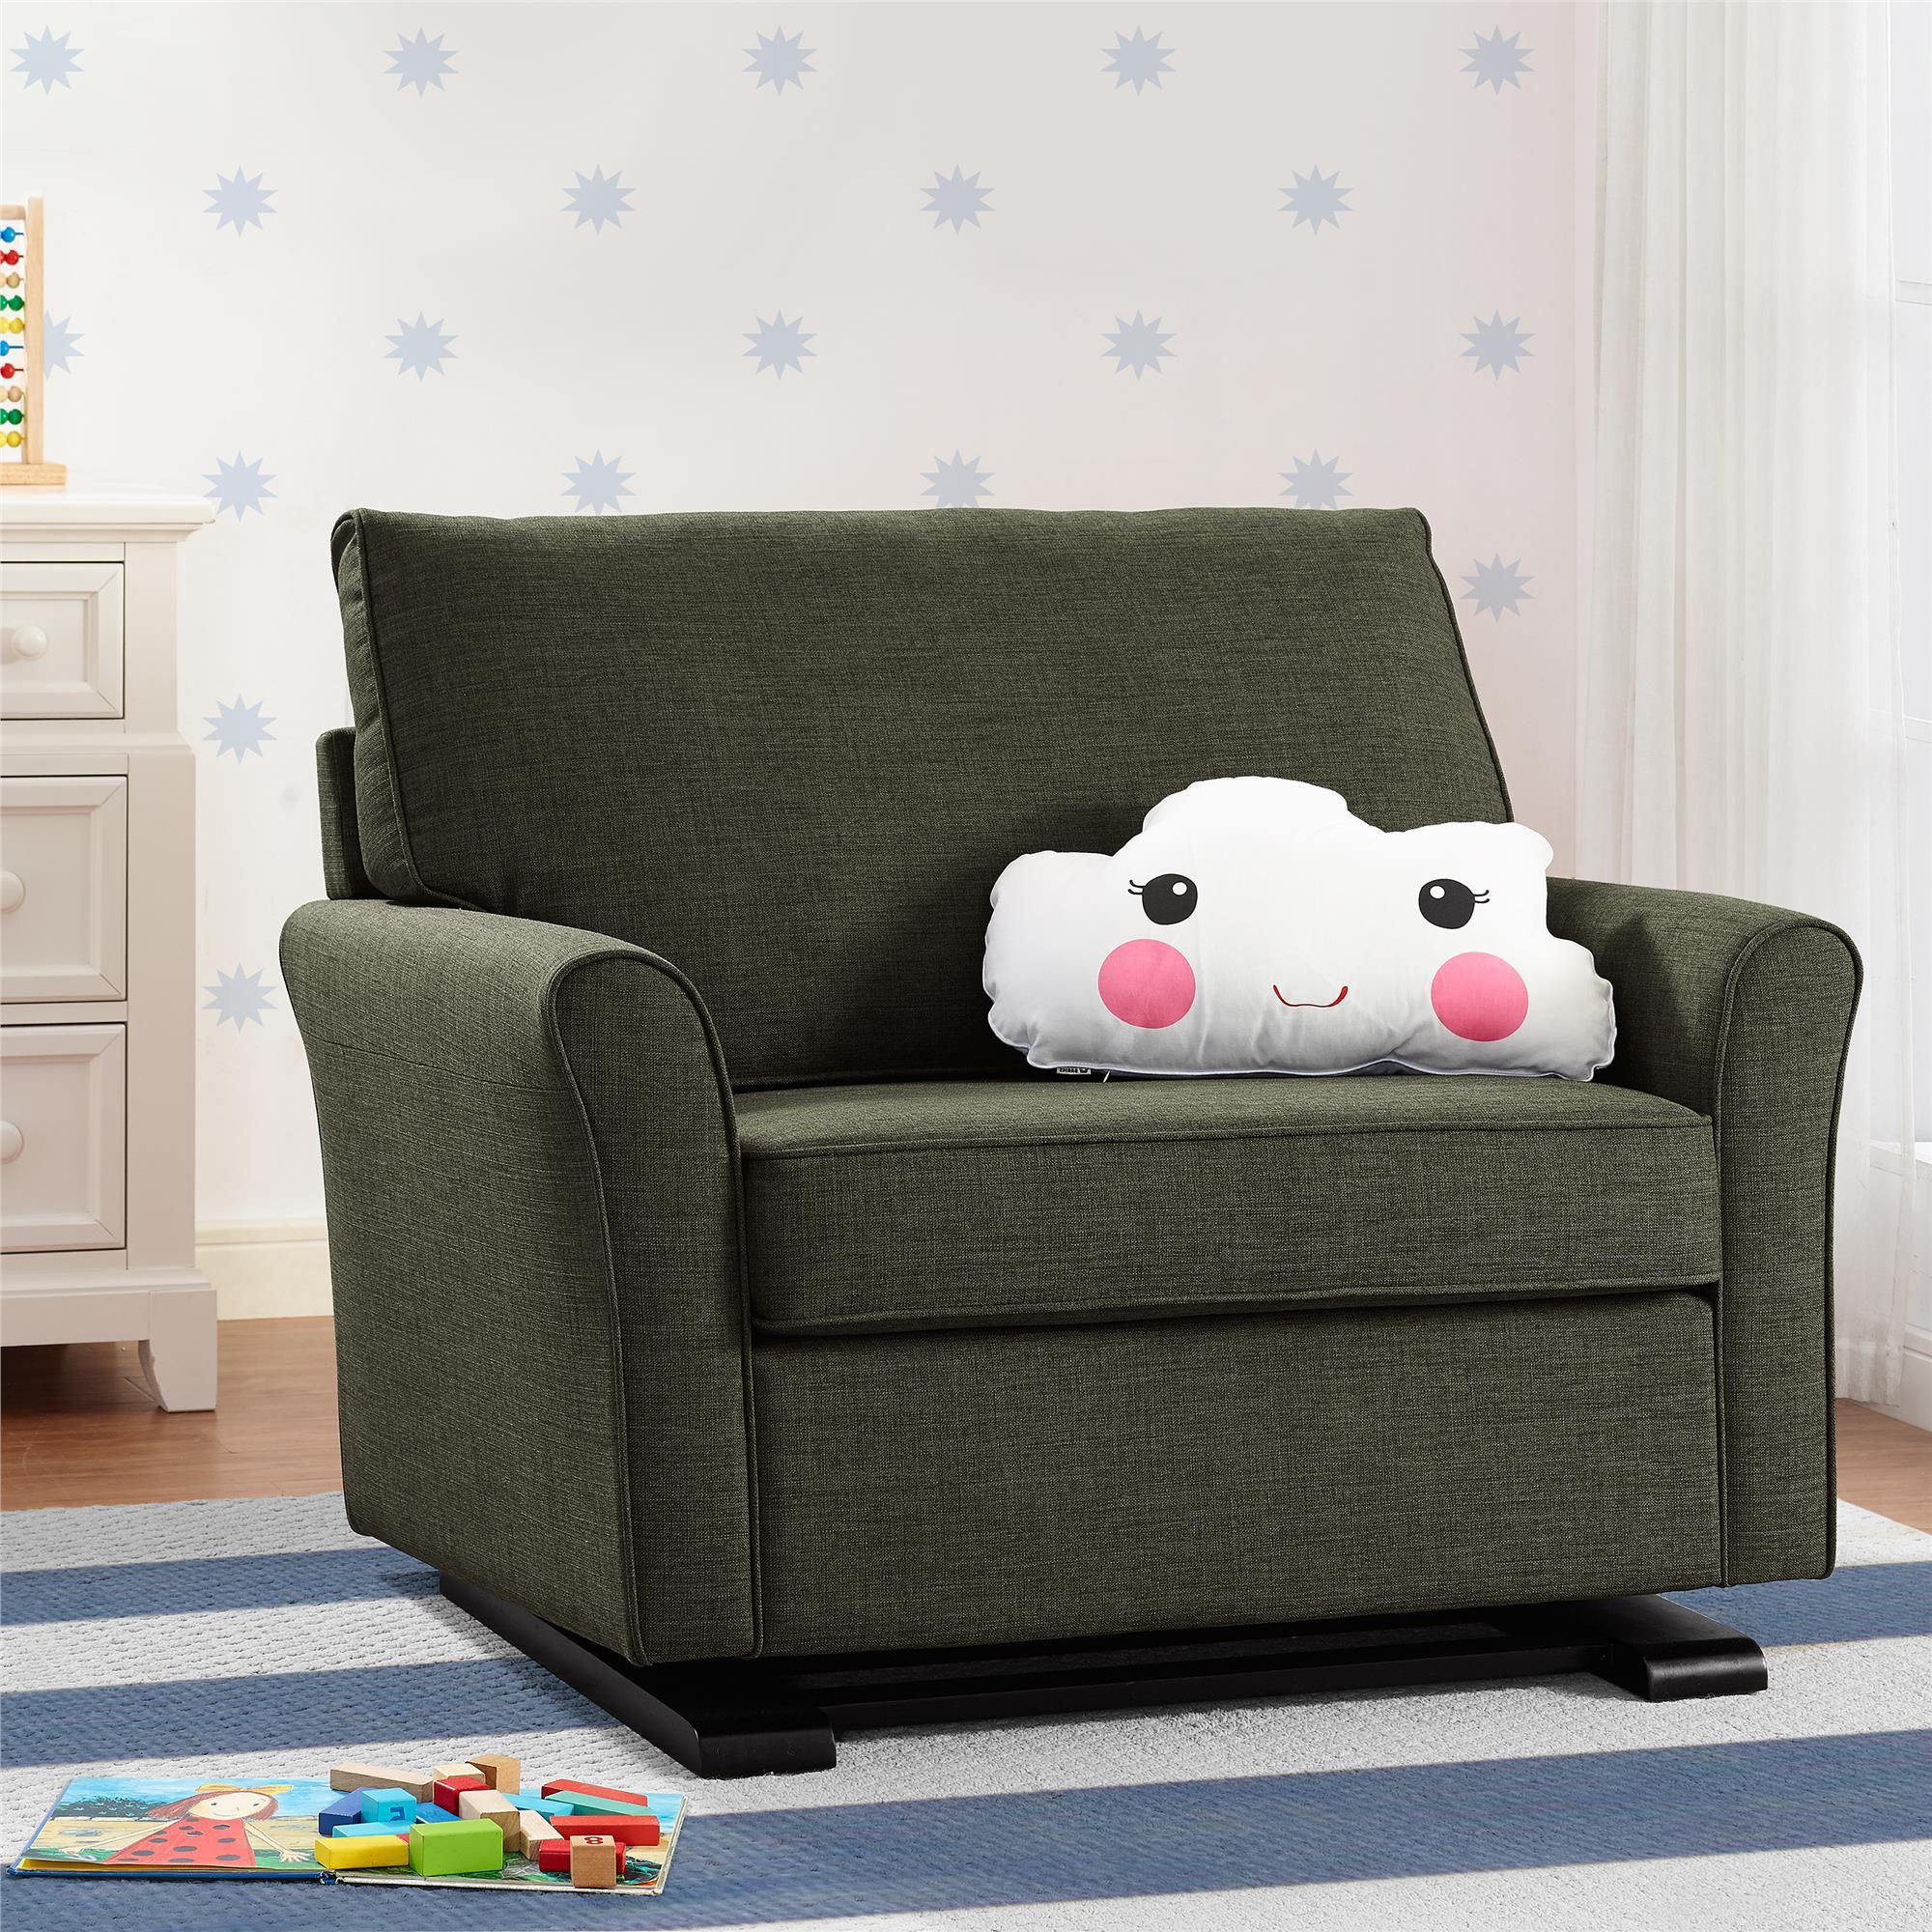 Pin by Babylist Eng on Prod Glider chair, Chair, Floor chair